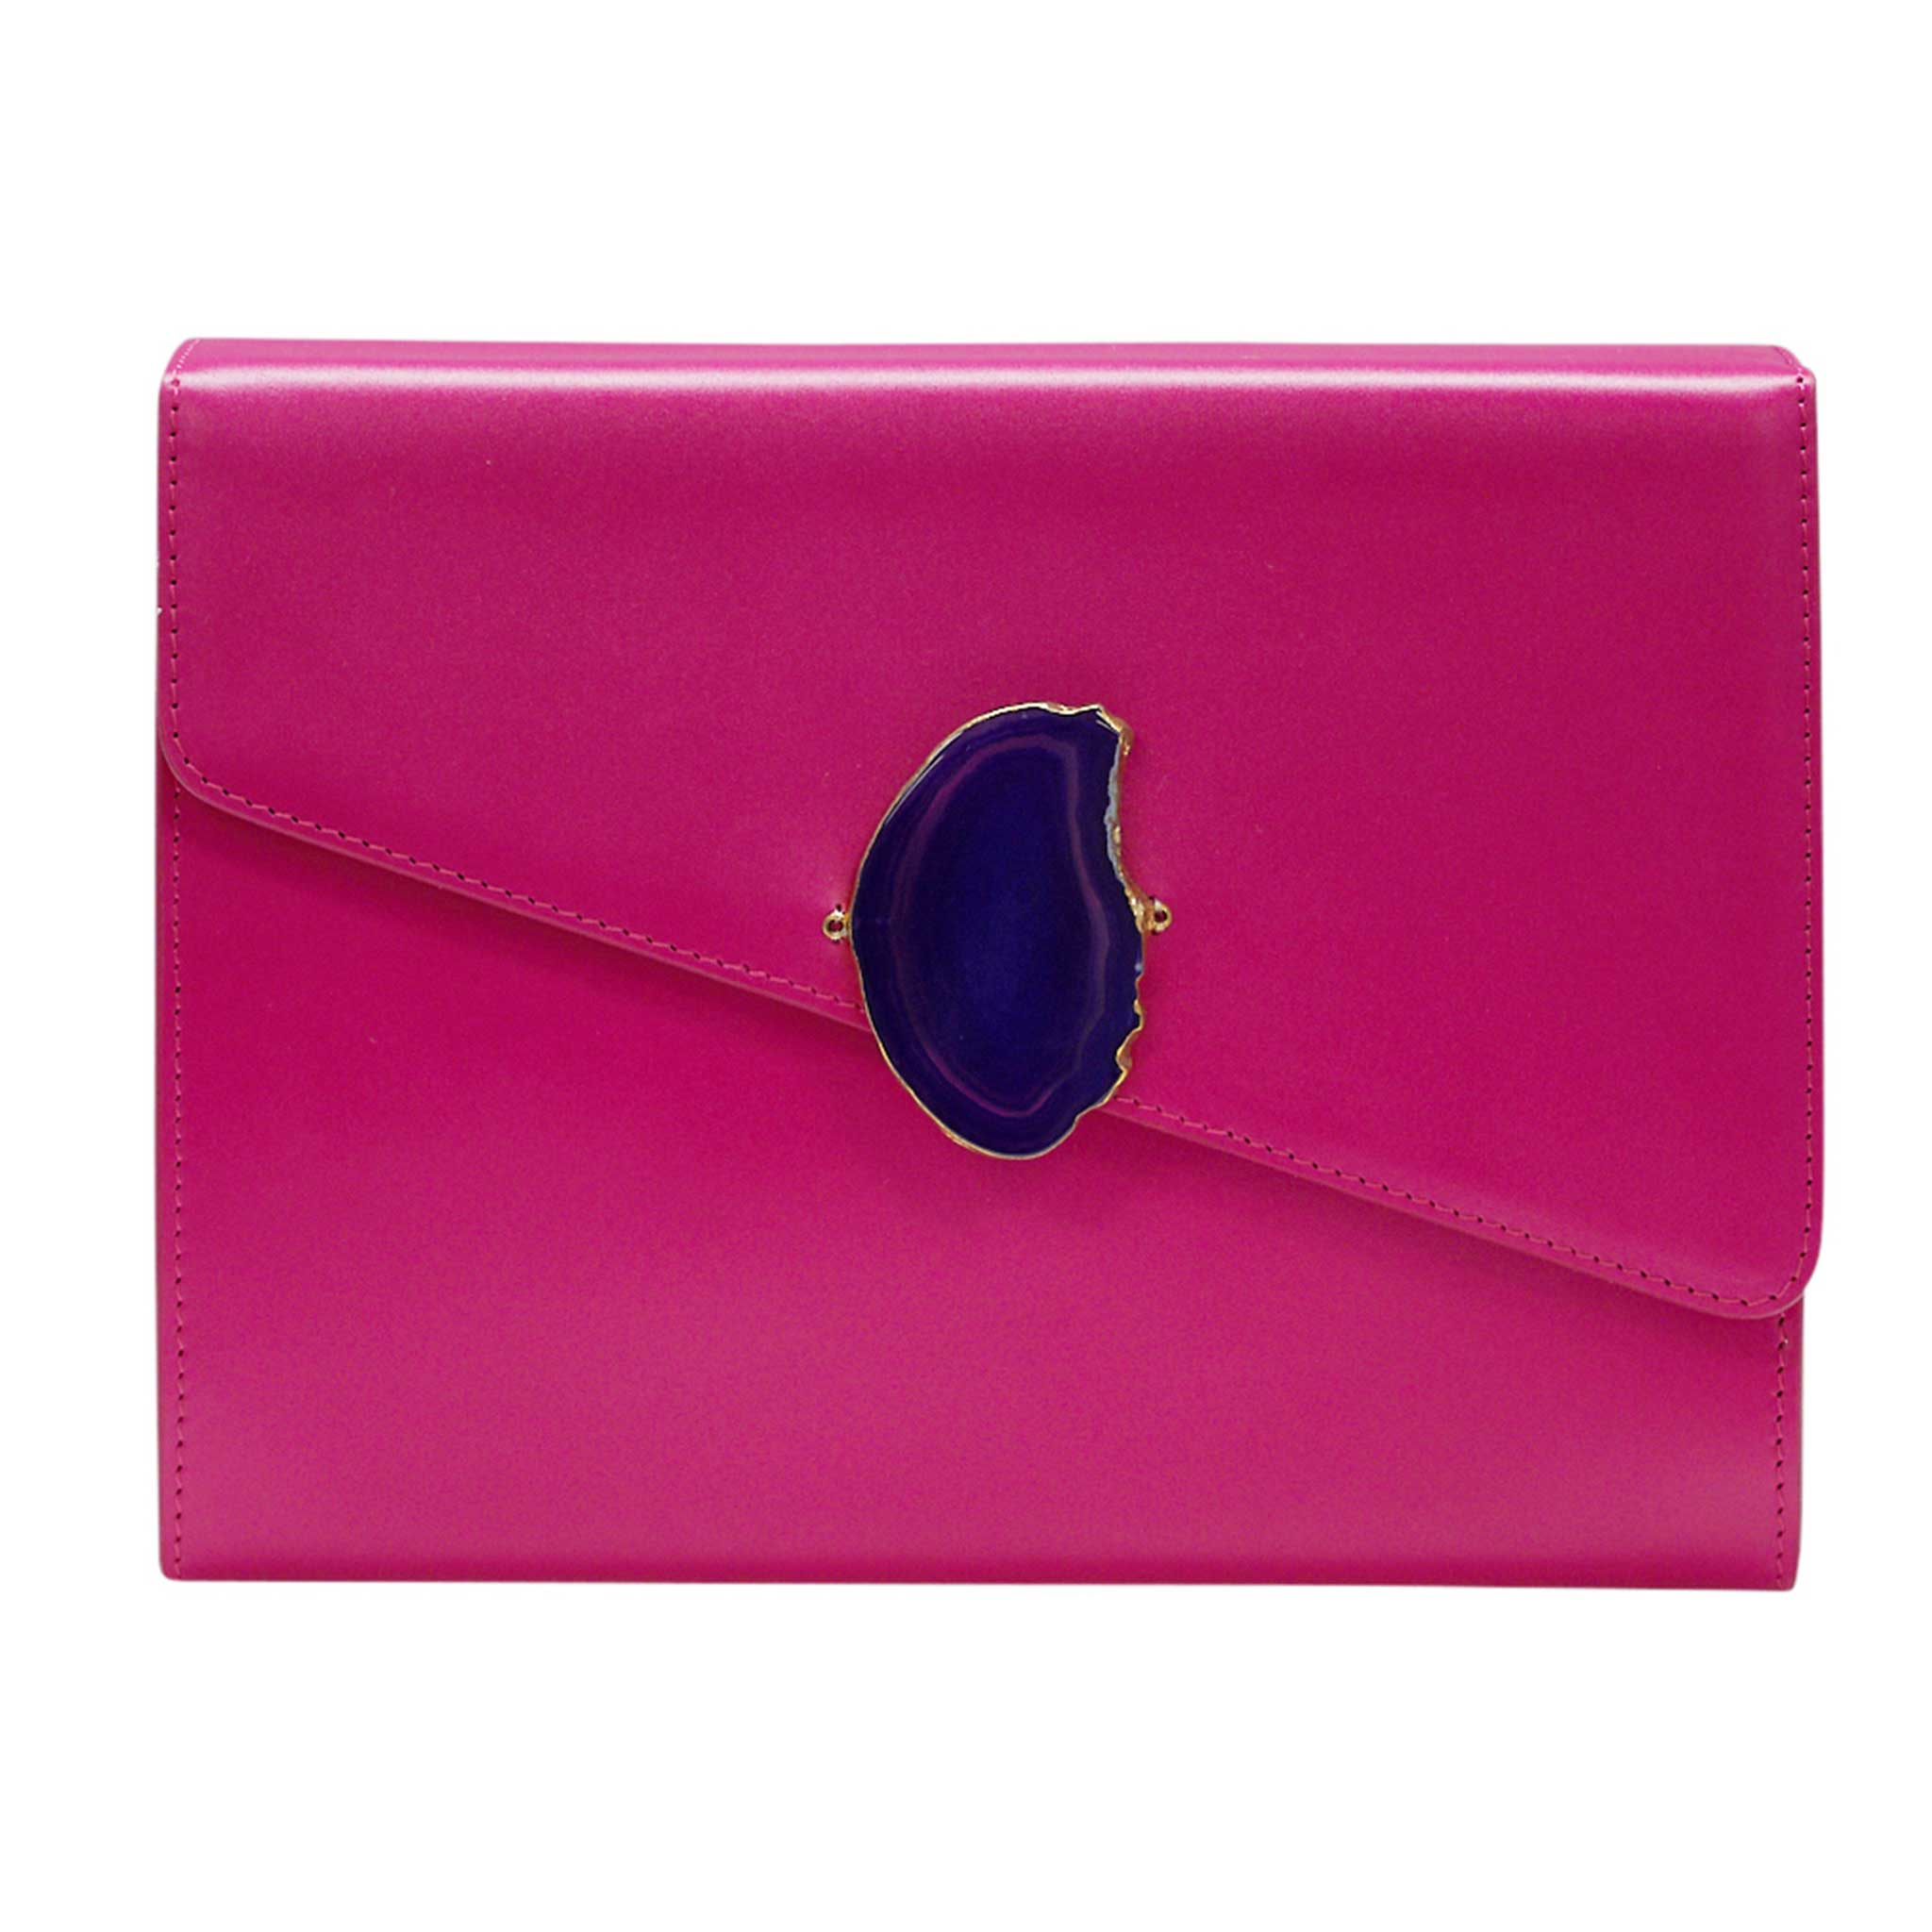 LOVED BAG - PINK RUBY LEATHER WITH PURPLE AGATE - 1.01.006.043